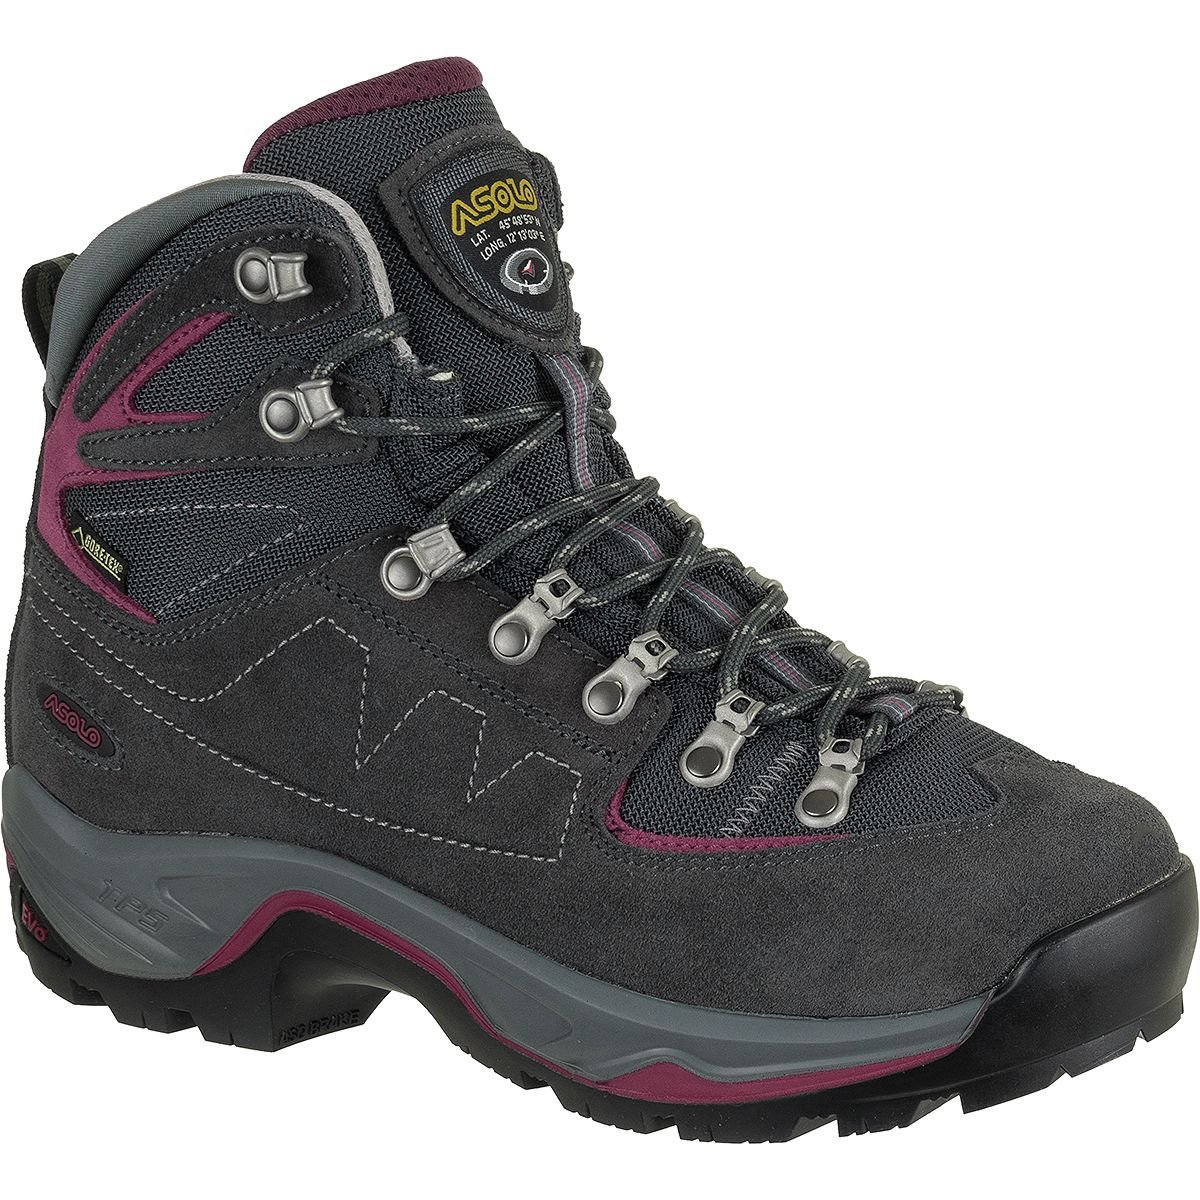 Asolo TPS Equalon GV B00WE3NYTU Backpacking Boot - Women's B00WE3NYTU GV US Women's 7.5 B (M)|Graphite/Red Bud 120feb